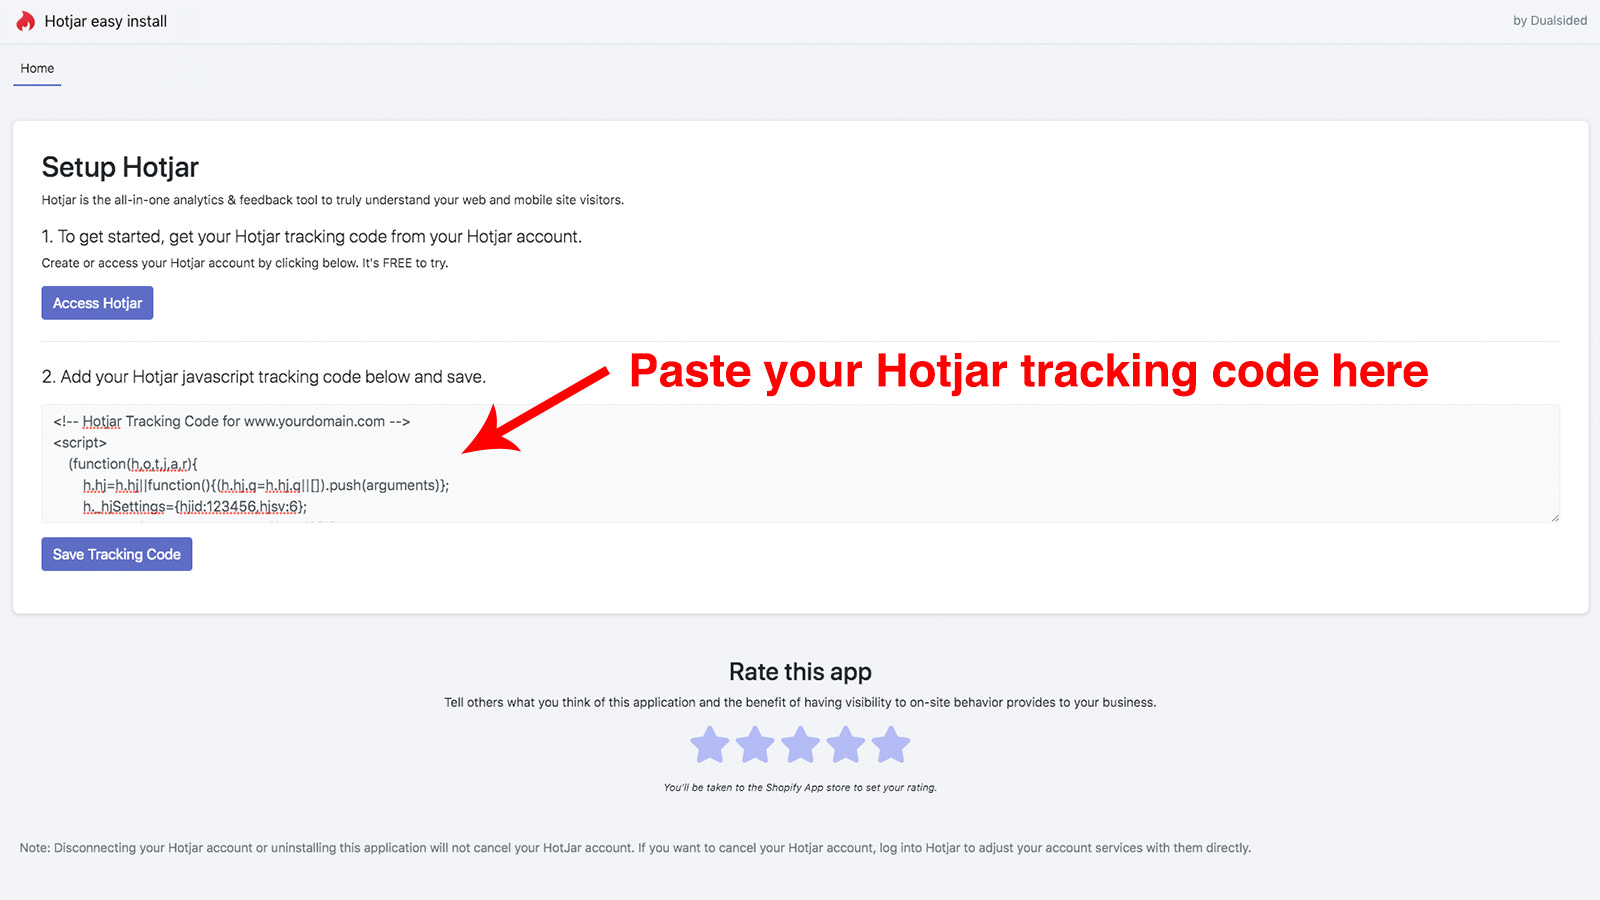 Paste your tracking code from Hotjar.com